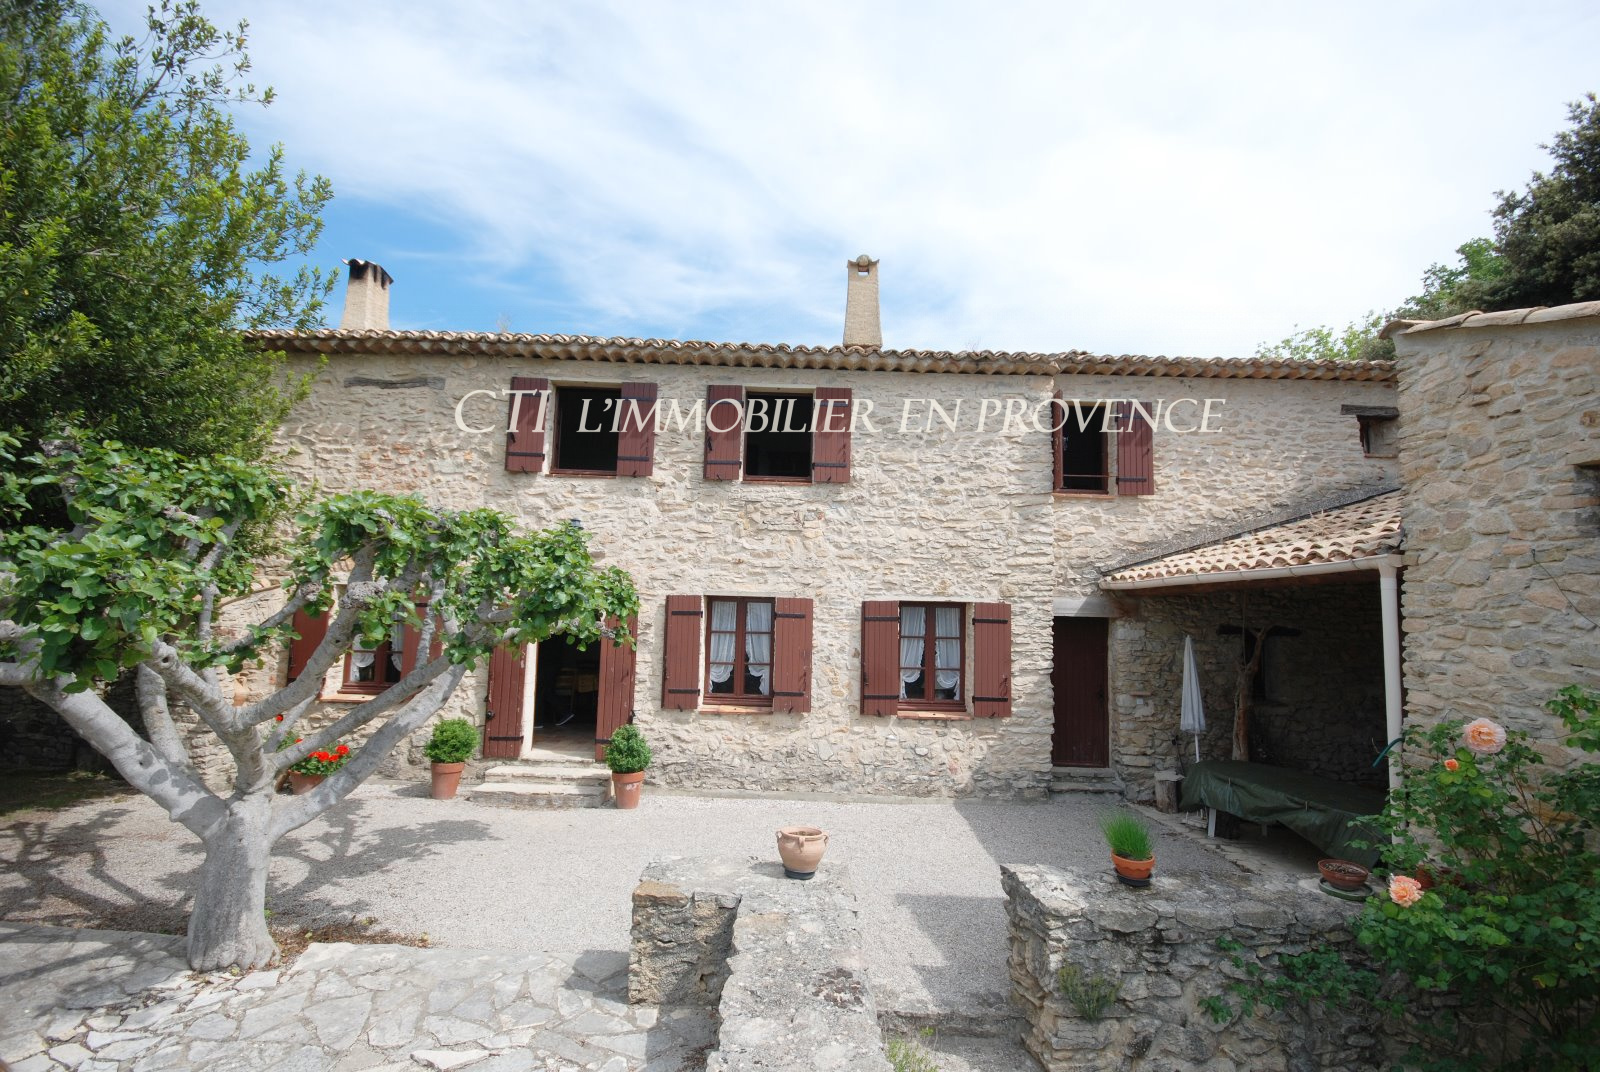 A rare opportunity; restored, stone Provencial farmhouse with panoramic views